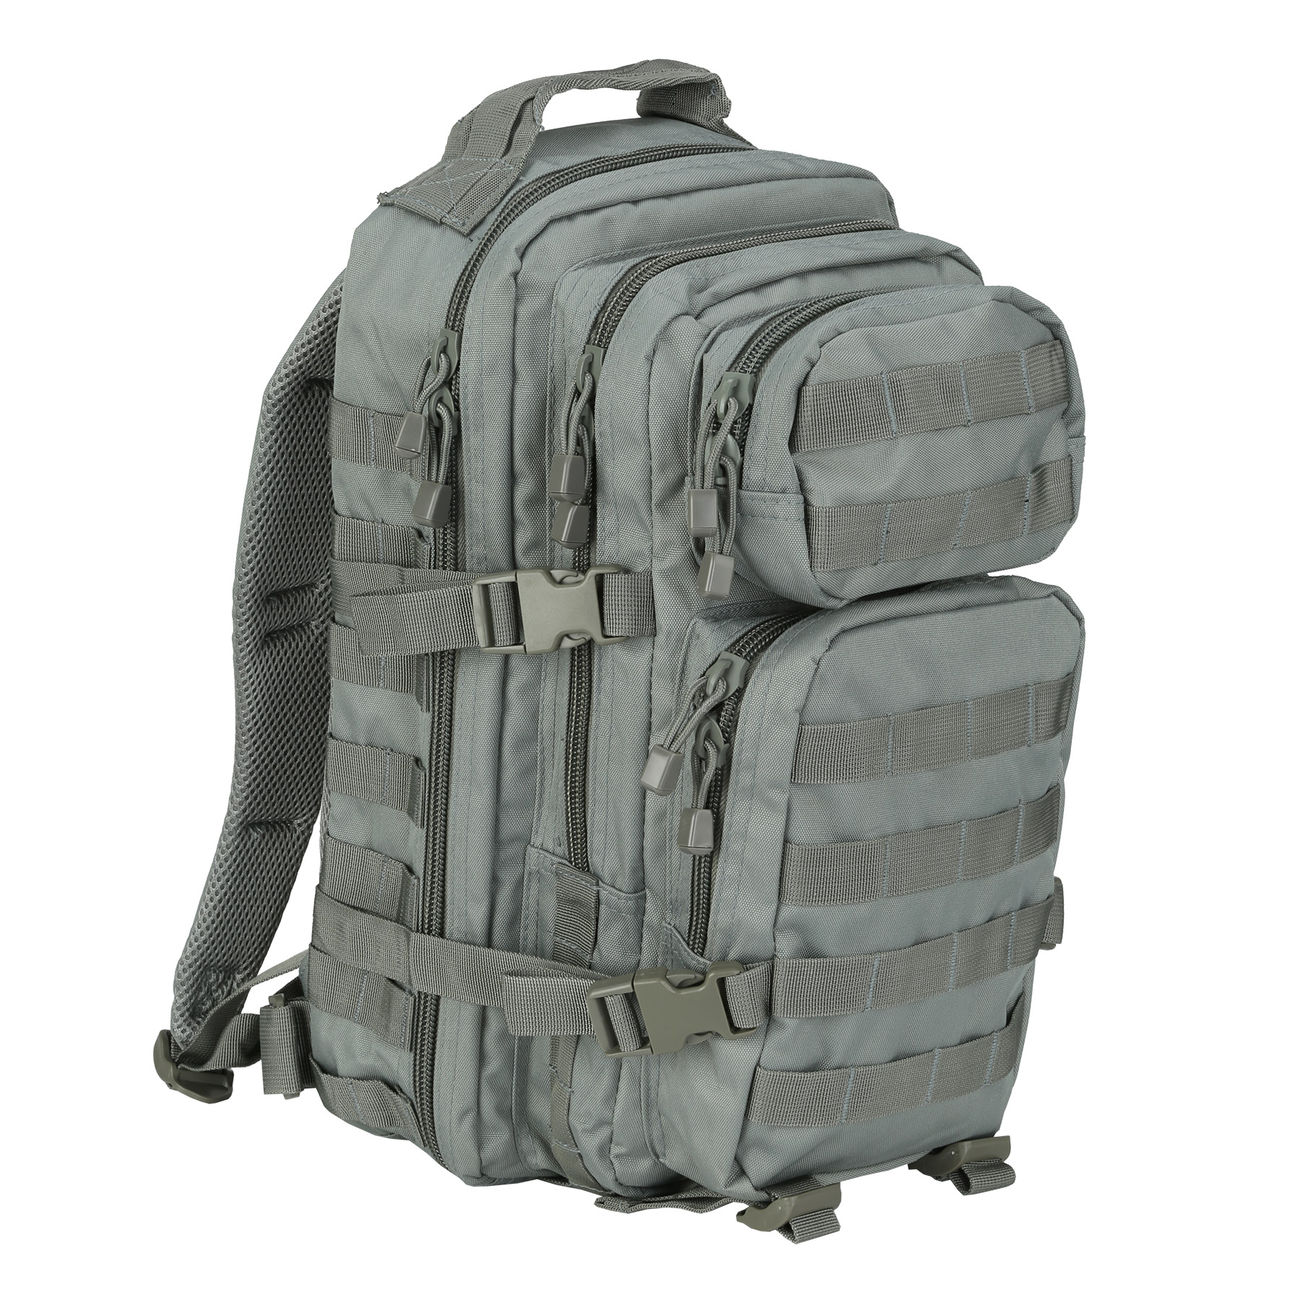 Mil-Tec Rucksack US Assault Pack I 20 Liter foliage 0